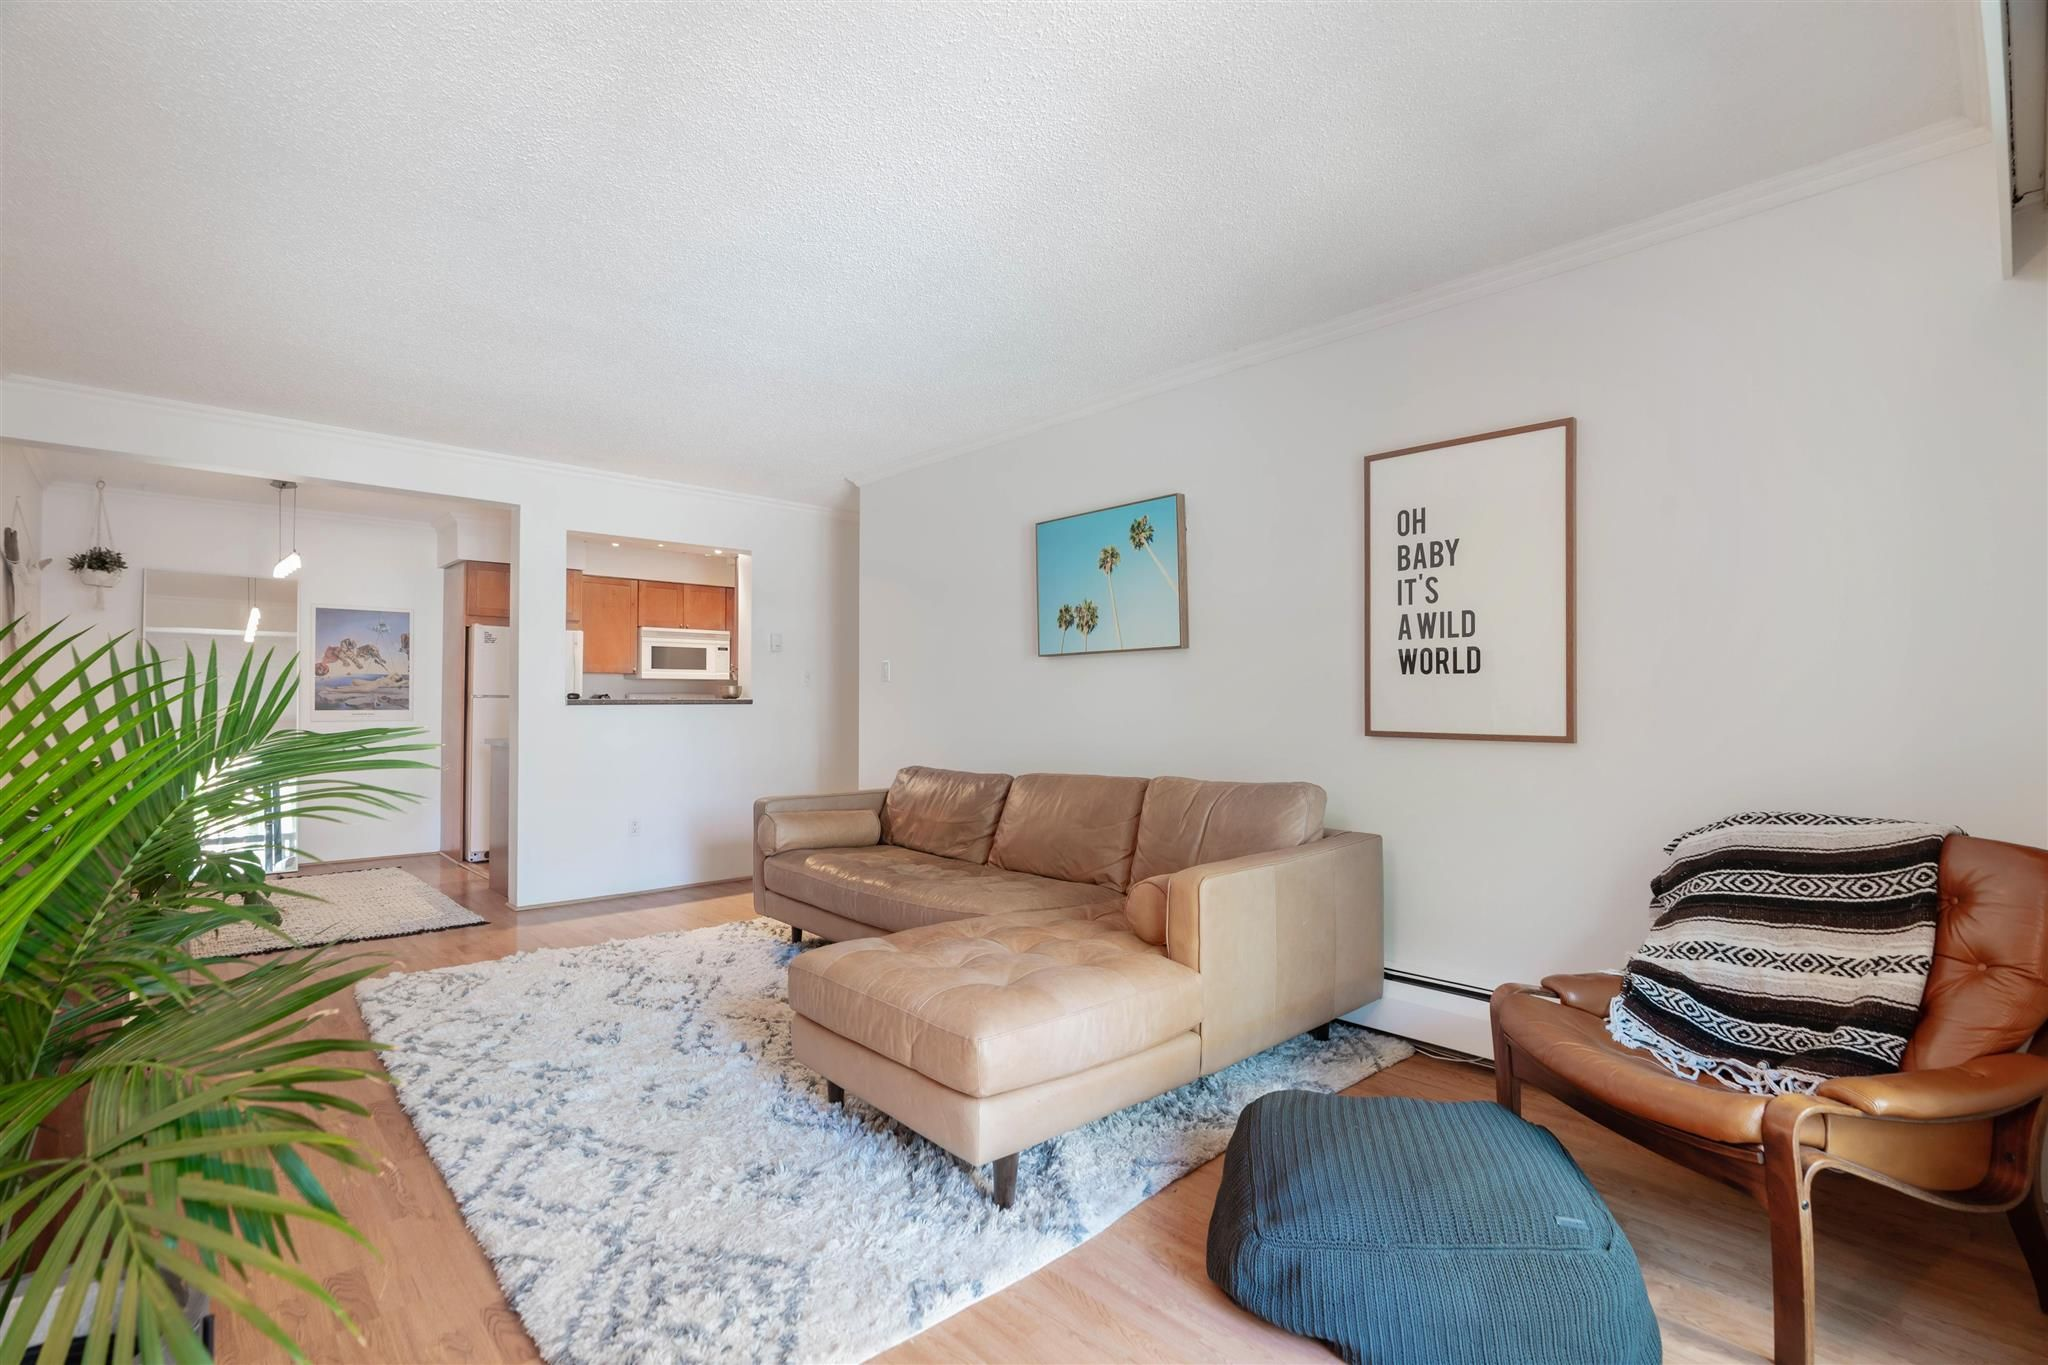 Main Photo: 306 1855 NELSON STREET in Vancouver: West End VW Condo for sale (Vancouver West)  : MLS®# R2599600